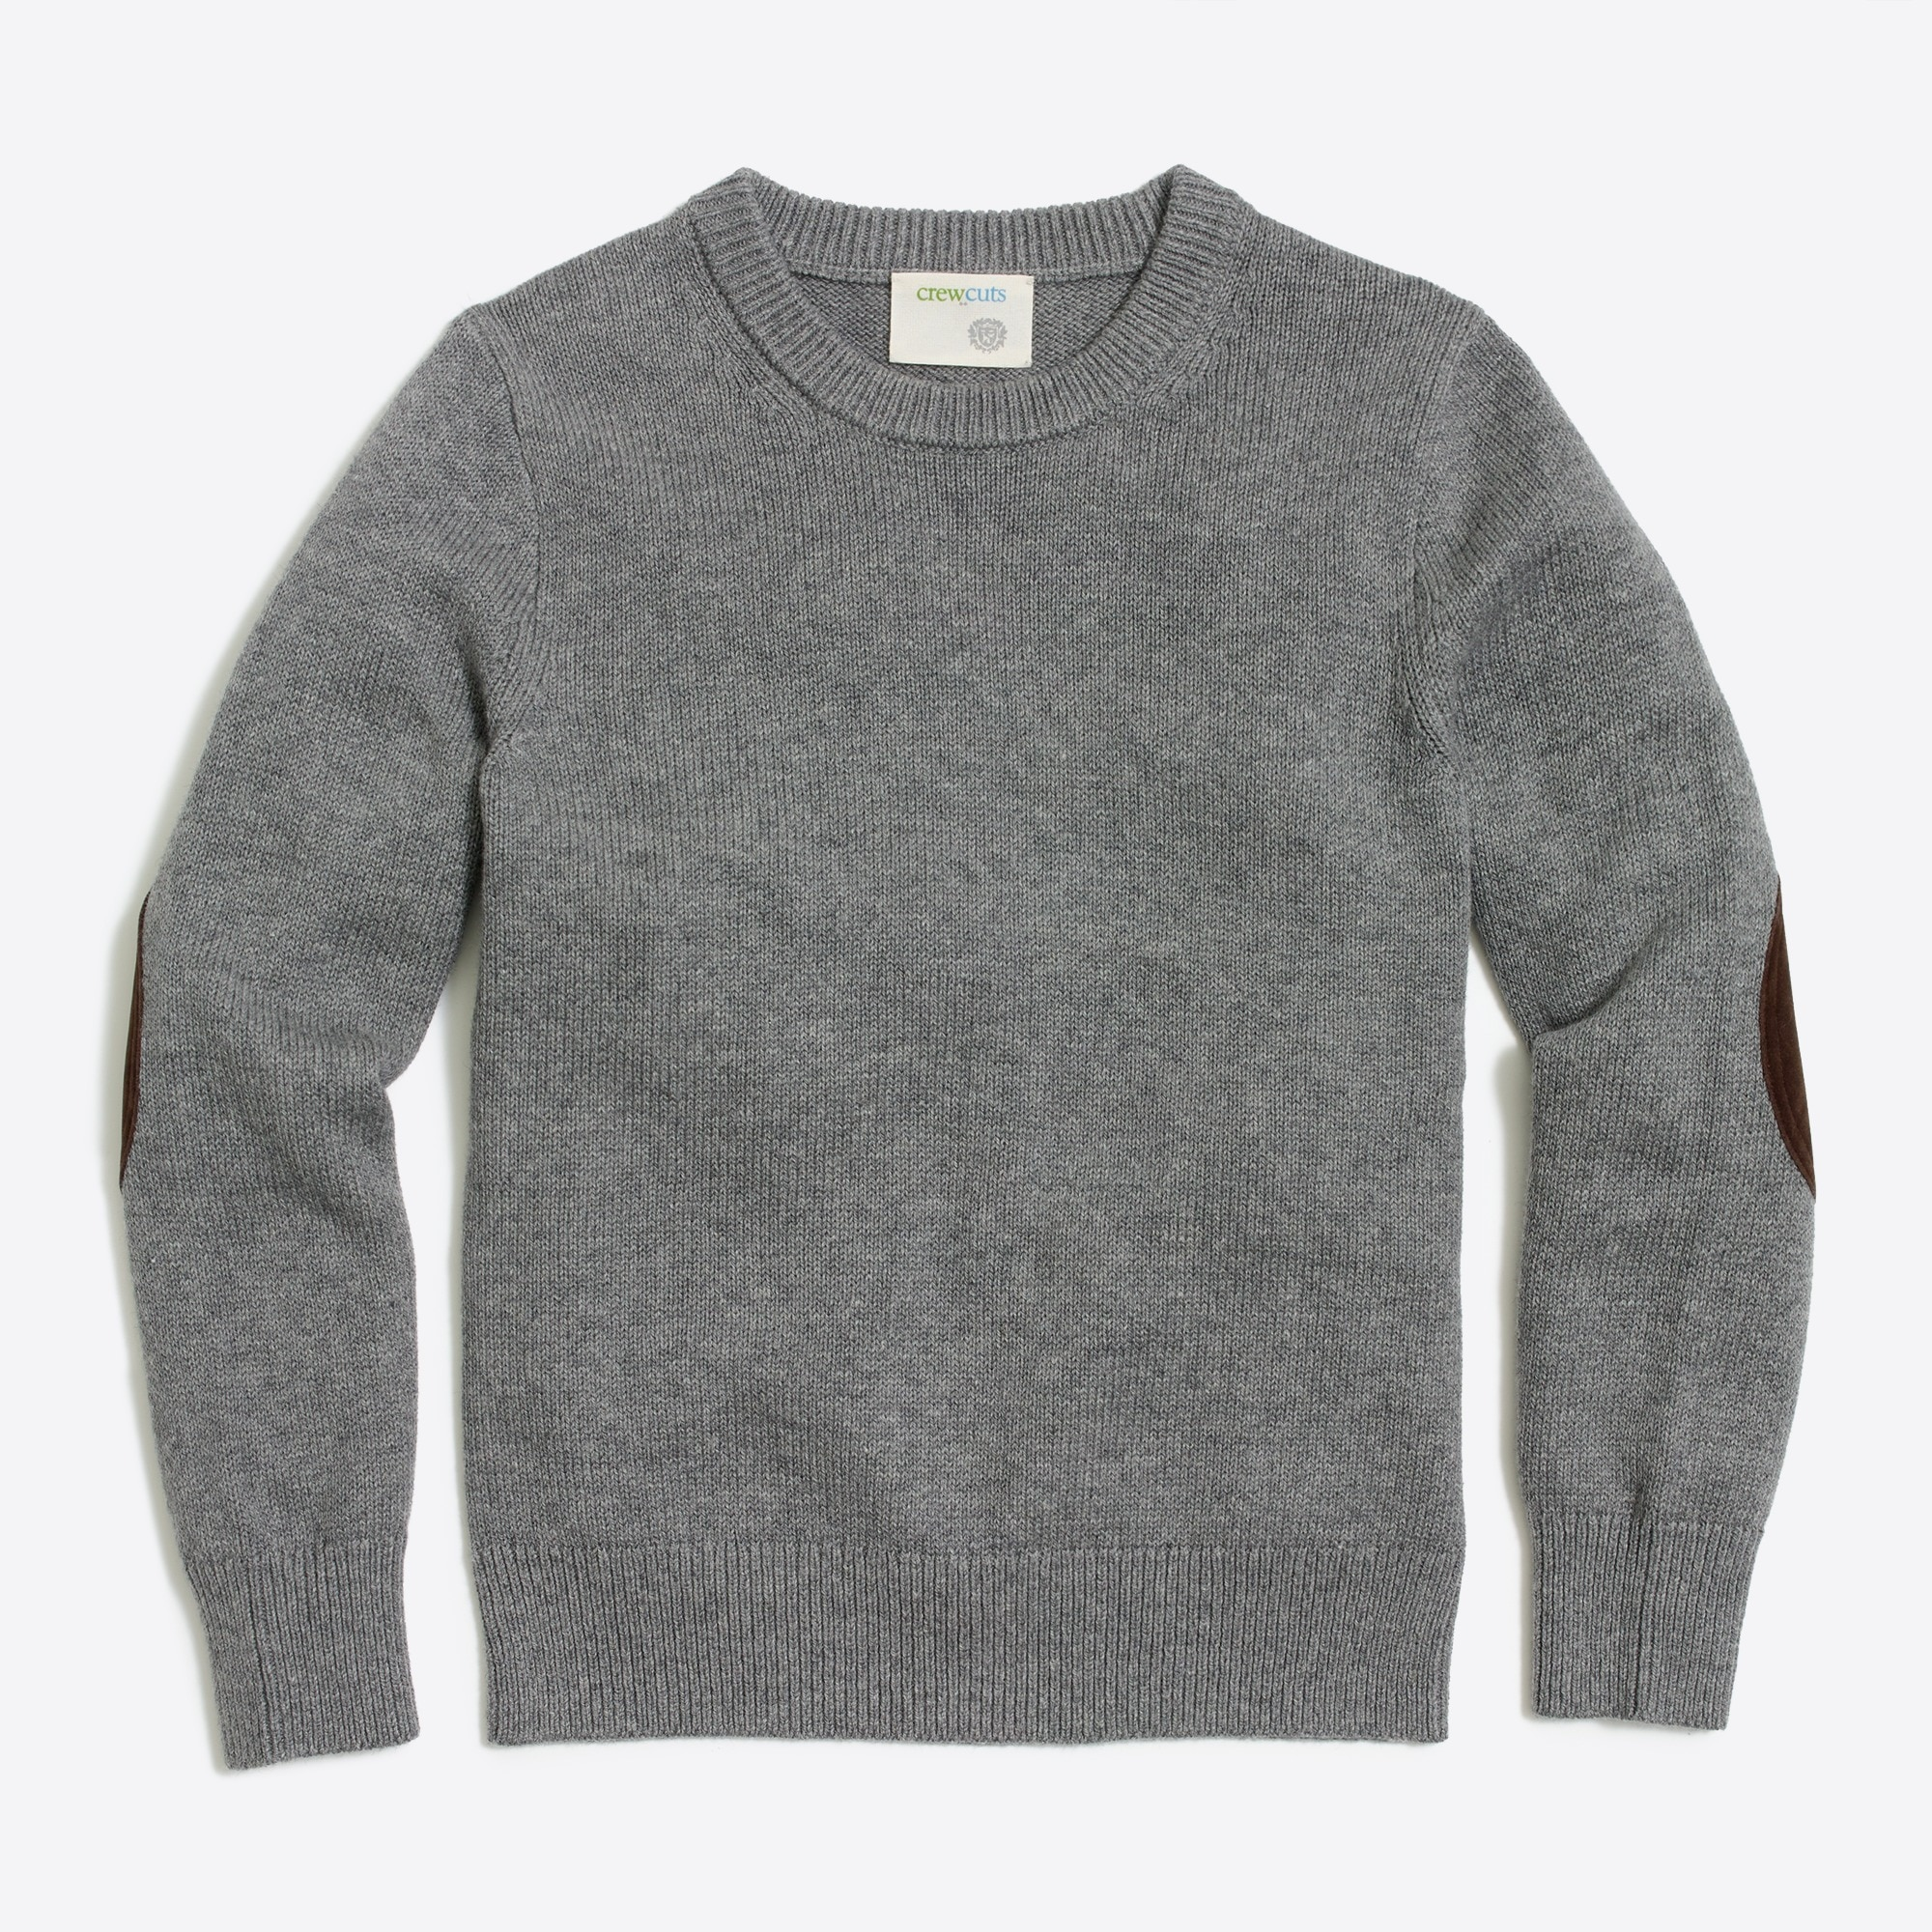 Image 2 for Boys' elbow-patch crewneck sweater